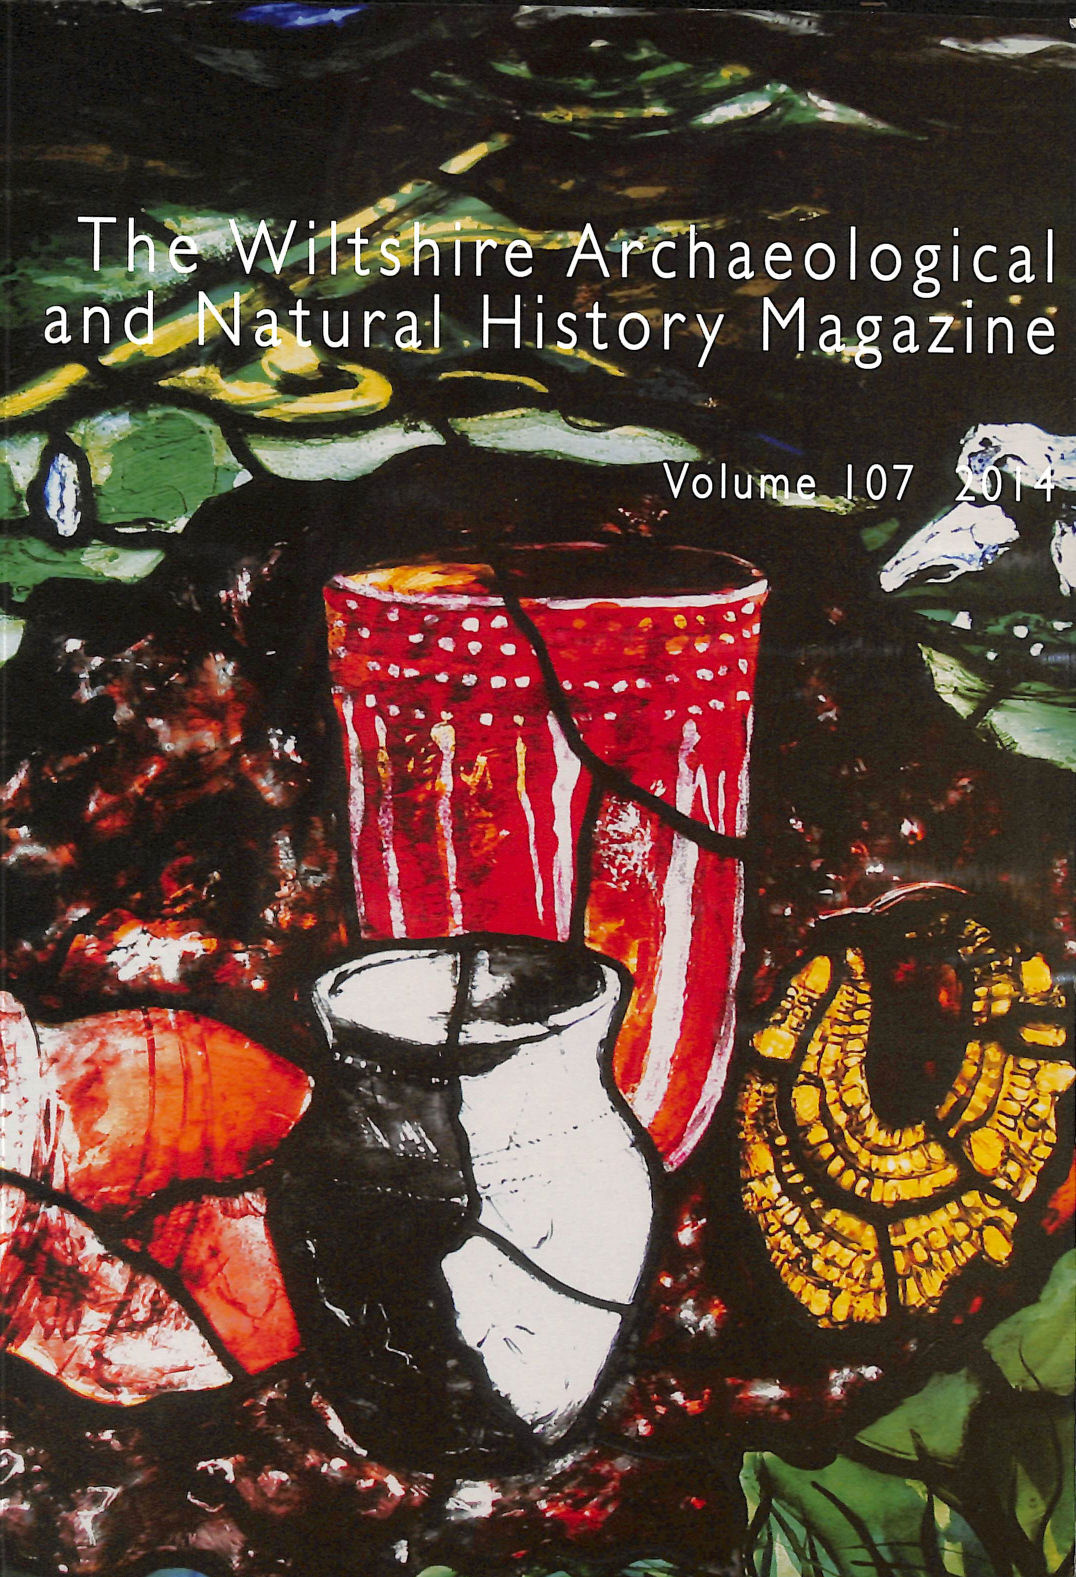 Image for The Wiltshire Archaeological and Natural History Magazine volume 107 2014